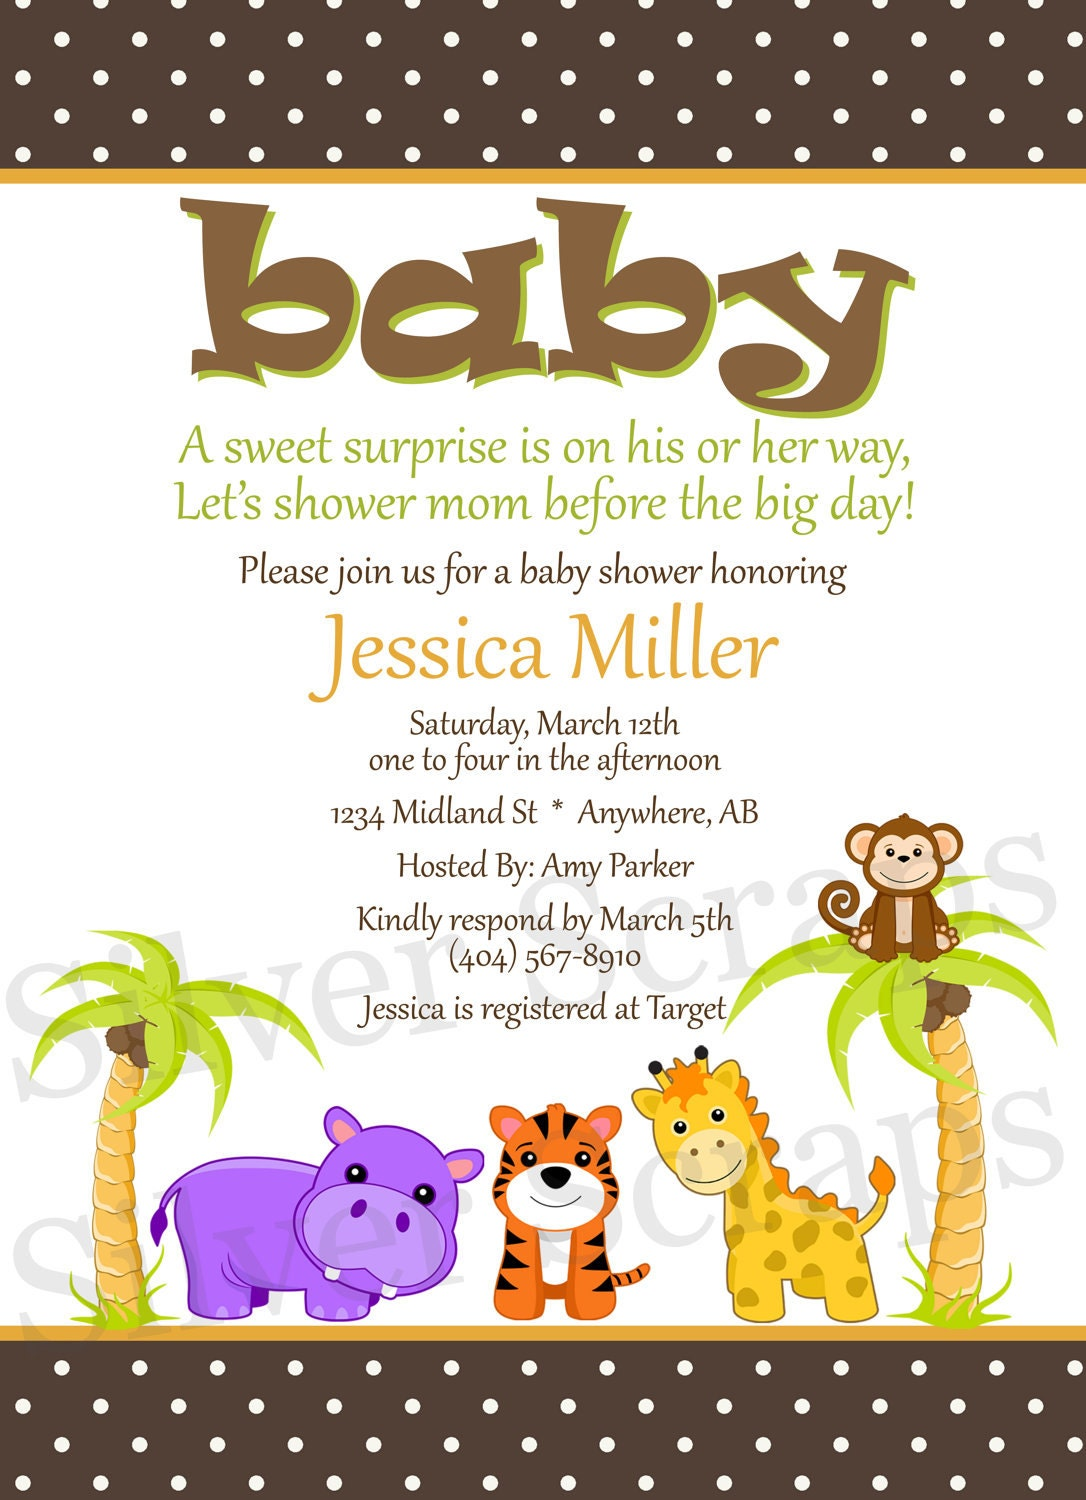 King Of The Jungle Baby Shower Invitations for luxury invitation ideas